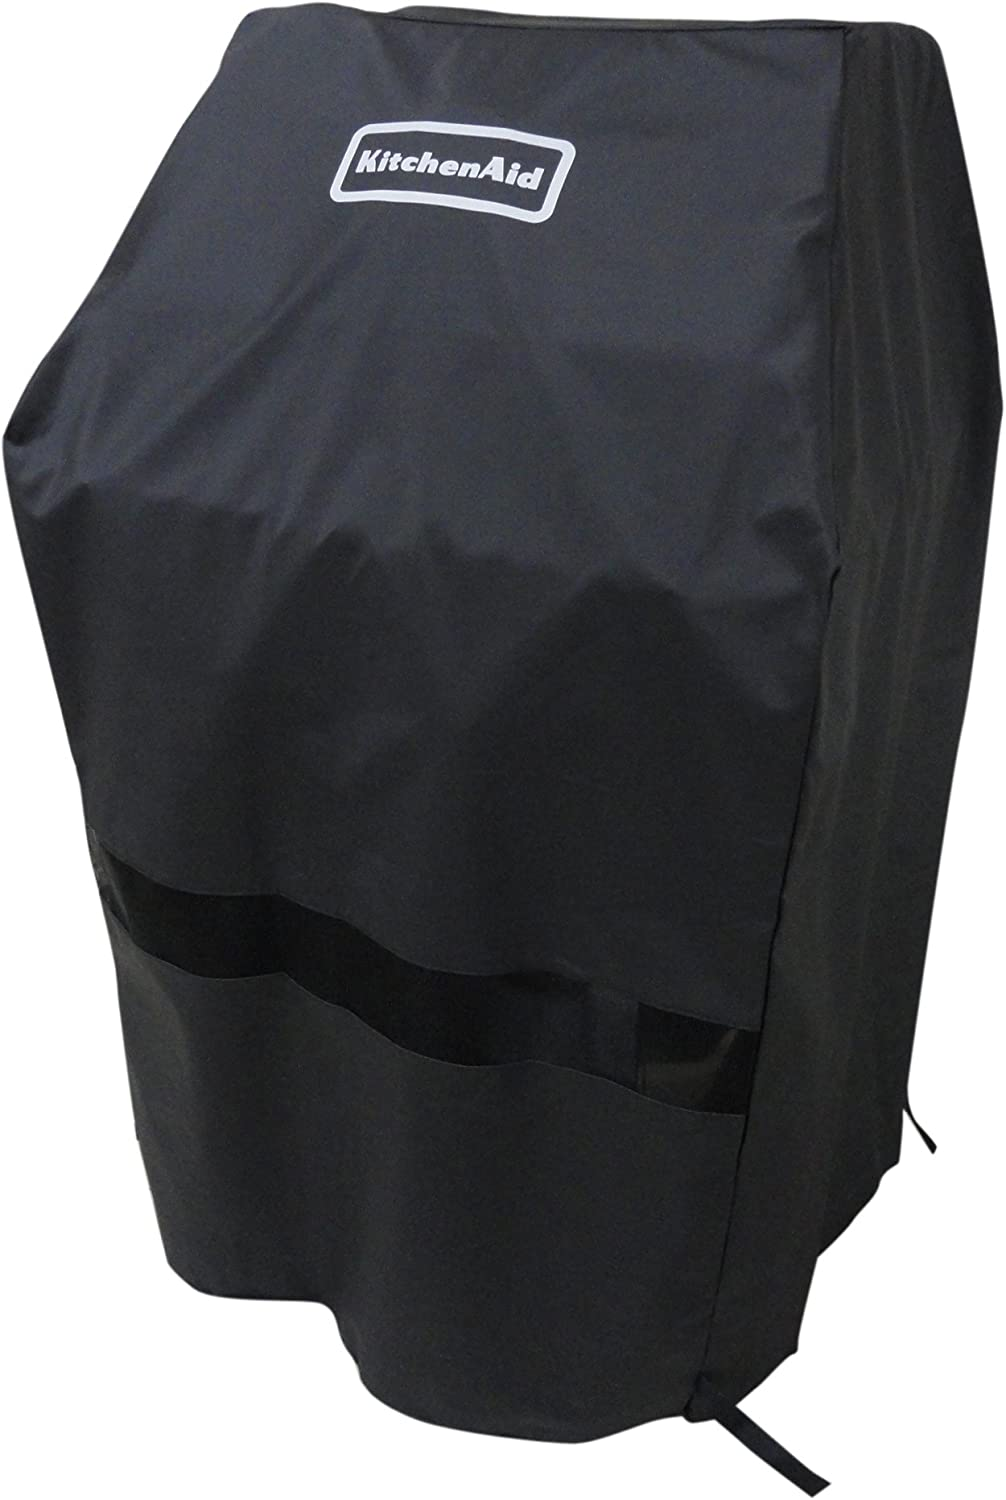 Amazon.com : KitchenAid 700-0819 Grill Cover, Small : Outdoor Grill on sunbeam grills, commercial flat top grills, george foreman grills, real stainless steel grills, viking grills, lodge grills, lynx grills, weber grills, top rated stainless steel grills, broil king grills, sears grills, home depot grills, walmart grills, stainless steel gas barbecue grills, amazon bbq grills, sam's club gas grills, amana grills, diamond cut grills, kitchen stoves with grills, char-broil grills,